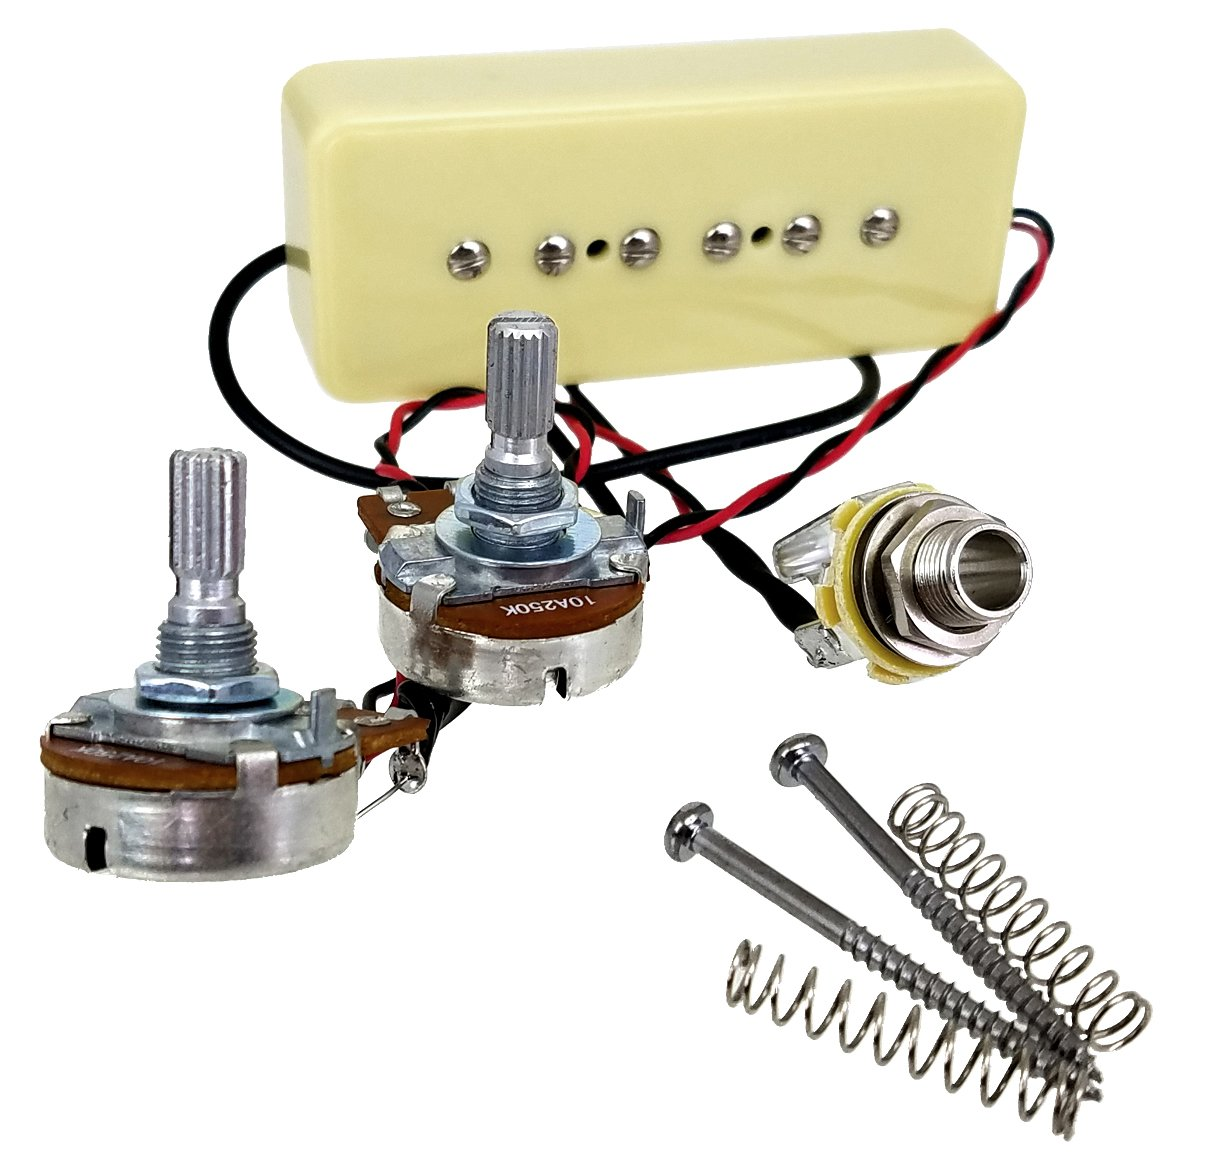 Soapbar P 90 Guitar Pickup Harness Pre Wired With Volume P90 Wiring Tone Pots No Soldering Required Musical Instruments